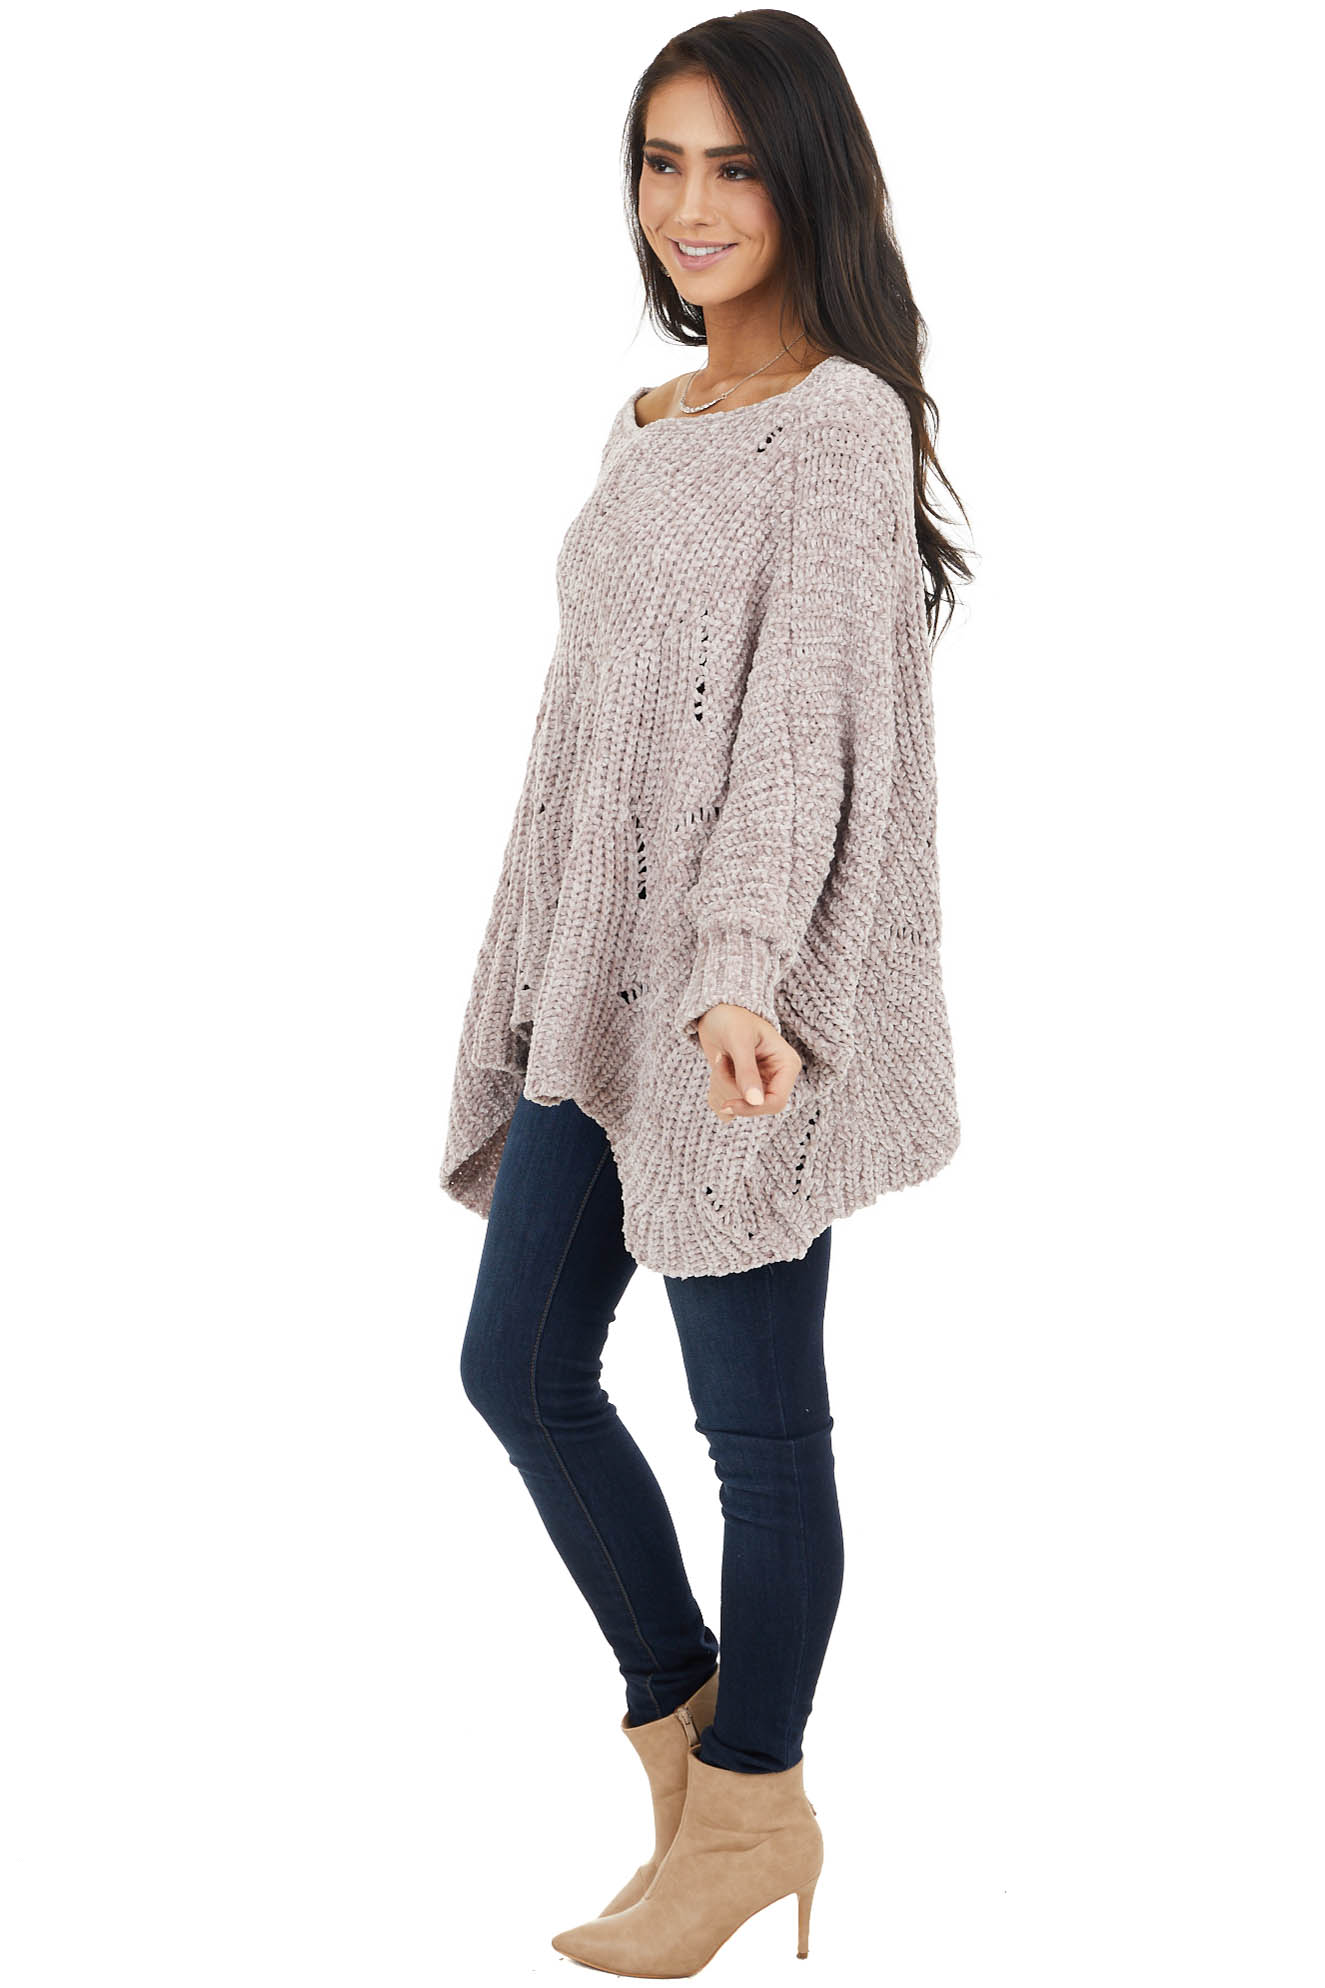 Dusty Rose Chenille Knit Sweater with Long Dolman Sleeves